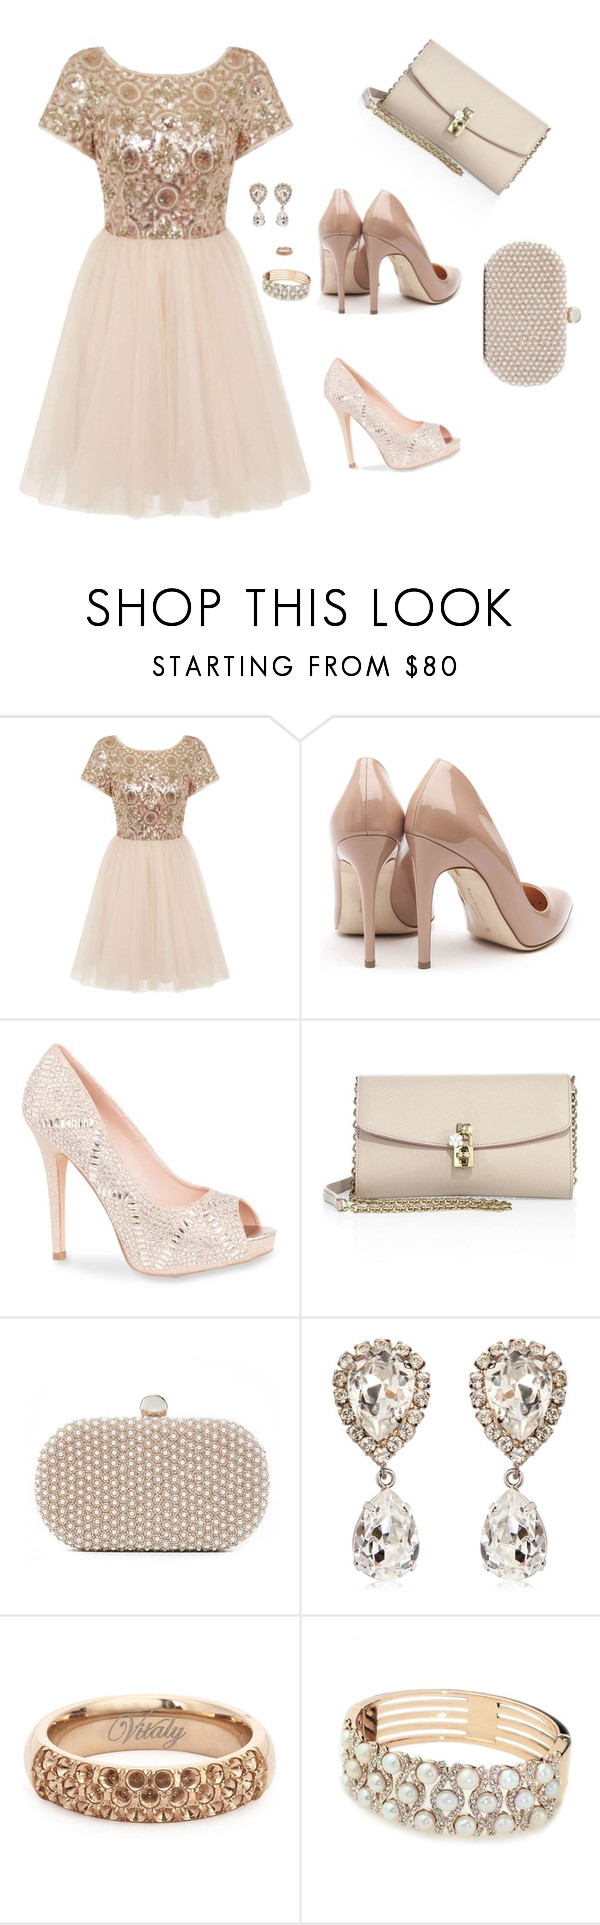 """""""Untitled #580"""" by psoto-1 ❤ liked on Polyvore featuring Chi Chi, Rupert Sanderson, Lauren Lorraine, Dolce&Gabbana and Santi"""